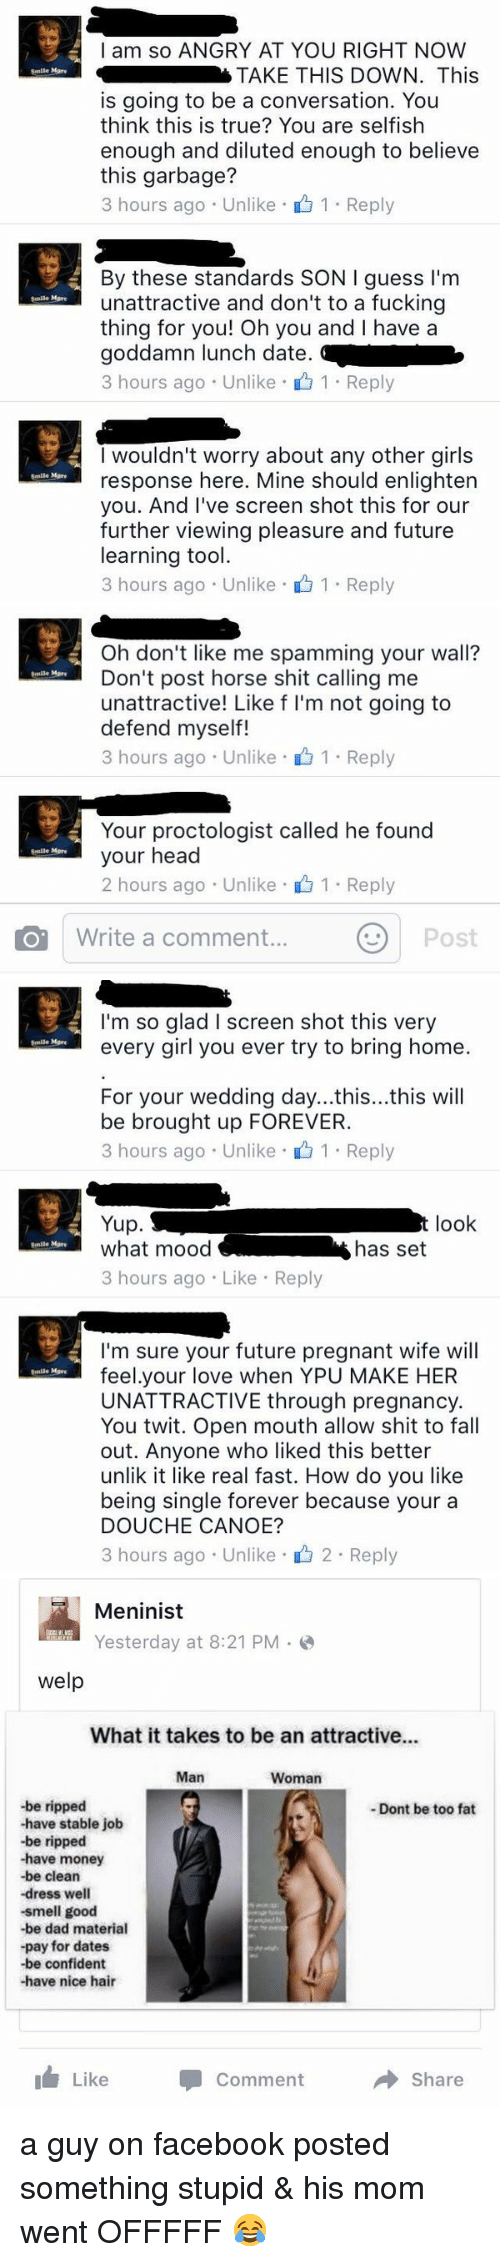 Confidence, Dad, and Dating: I am so ANGRY AT YOU RIGHT NOW  TAKE THIS DOWN. This  Smile More  is going to be a conversation. You  think this is true? You are selfish  enough and diluted enough to believe  this garbage?  3 hours ago Unlike 1. Reply  By these standards SON I guess I'm  unattractive and don't to a fucking  More  thing for you! Oh you and have a  goddamn lunch date.  3 hours ago Unlike 1 Reply  I wouldn't worry about any other girls  response here. Mine should enlighten  Smile More  you. And I've screen shot this for our  further viewing pleasure and future  learning tool  3 hours ago Unlike 1 Reply   Oh don't like me spamming your wall?  Don't post horse shit calling me  Smile More  unattractive! Like f l'm not going to  defend myself!  3 hours ago Unlike 1 Reply  Your proctologist called he found  your head  Smile More  2 hours ago Unlike 1 Reply  O Write a comment...  Post   smile More  Smile More  Smile More  I'm so glad l screen shot this very  every girl you ever try to bring home.  For your wedding day...this...this will  be brought up FOREVER.  3 hours ago Unlike 1 Reply  Yup.  t look  what mood  has set  3 hours ago Like Reply  I'm sure your future pregnant wife will  feel.your love when YPU MAKE HER  UNATTRACTIVE through pregnancy.  You twit. Open mouth allow shit to fall  out. Anyone who liked this better  unlik it like real fast. How do you like  being single forever because your a  DOUCHE CANOE?  3 hours ago Unlike 2 Reply   Meninist  Yesterday at 8:21 PM  welp  What it takes to be an attractive...  Man  Woman  -be ripped  -Dont be too fat  -have stable job  -be ripped  be clean  -dress well  smell good  -be dad material  -pay for dates  -be confident  have nice hair  Like  Comment  Share a guy on facebook posted something stupid & his mom went OFFFFF 😂